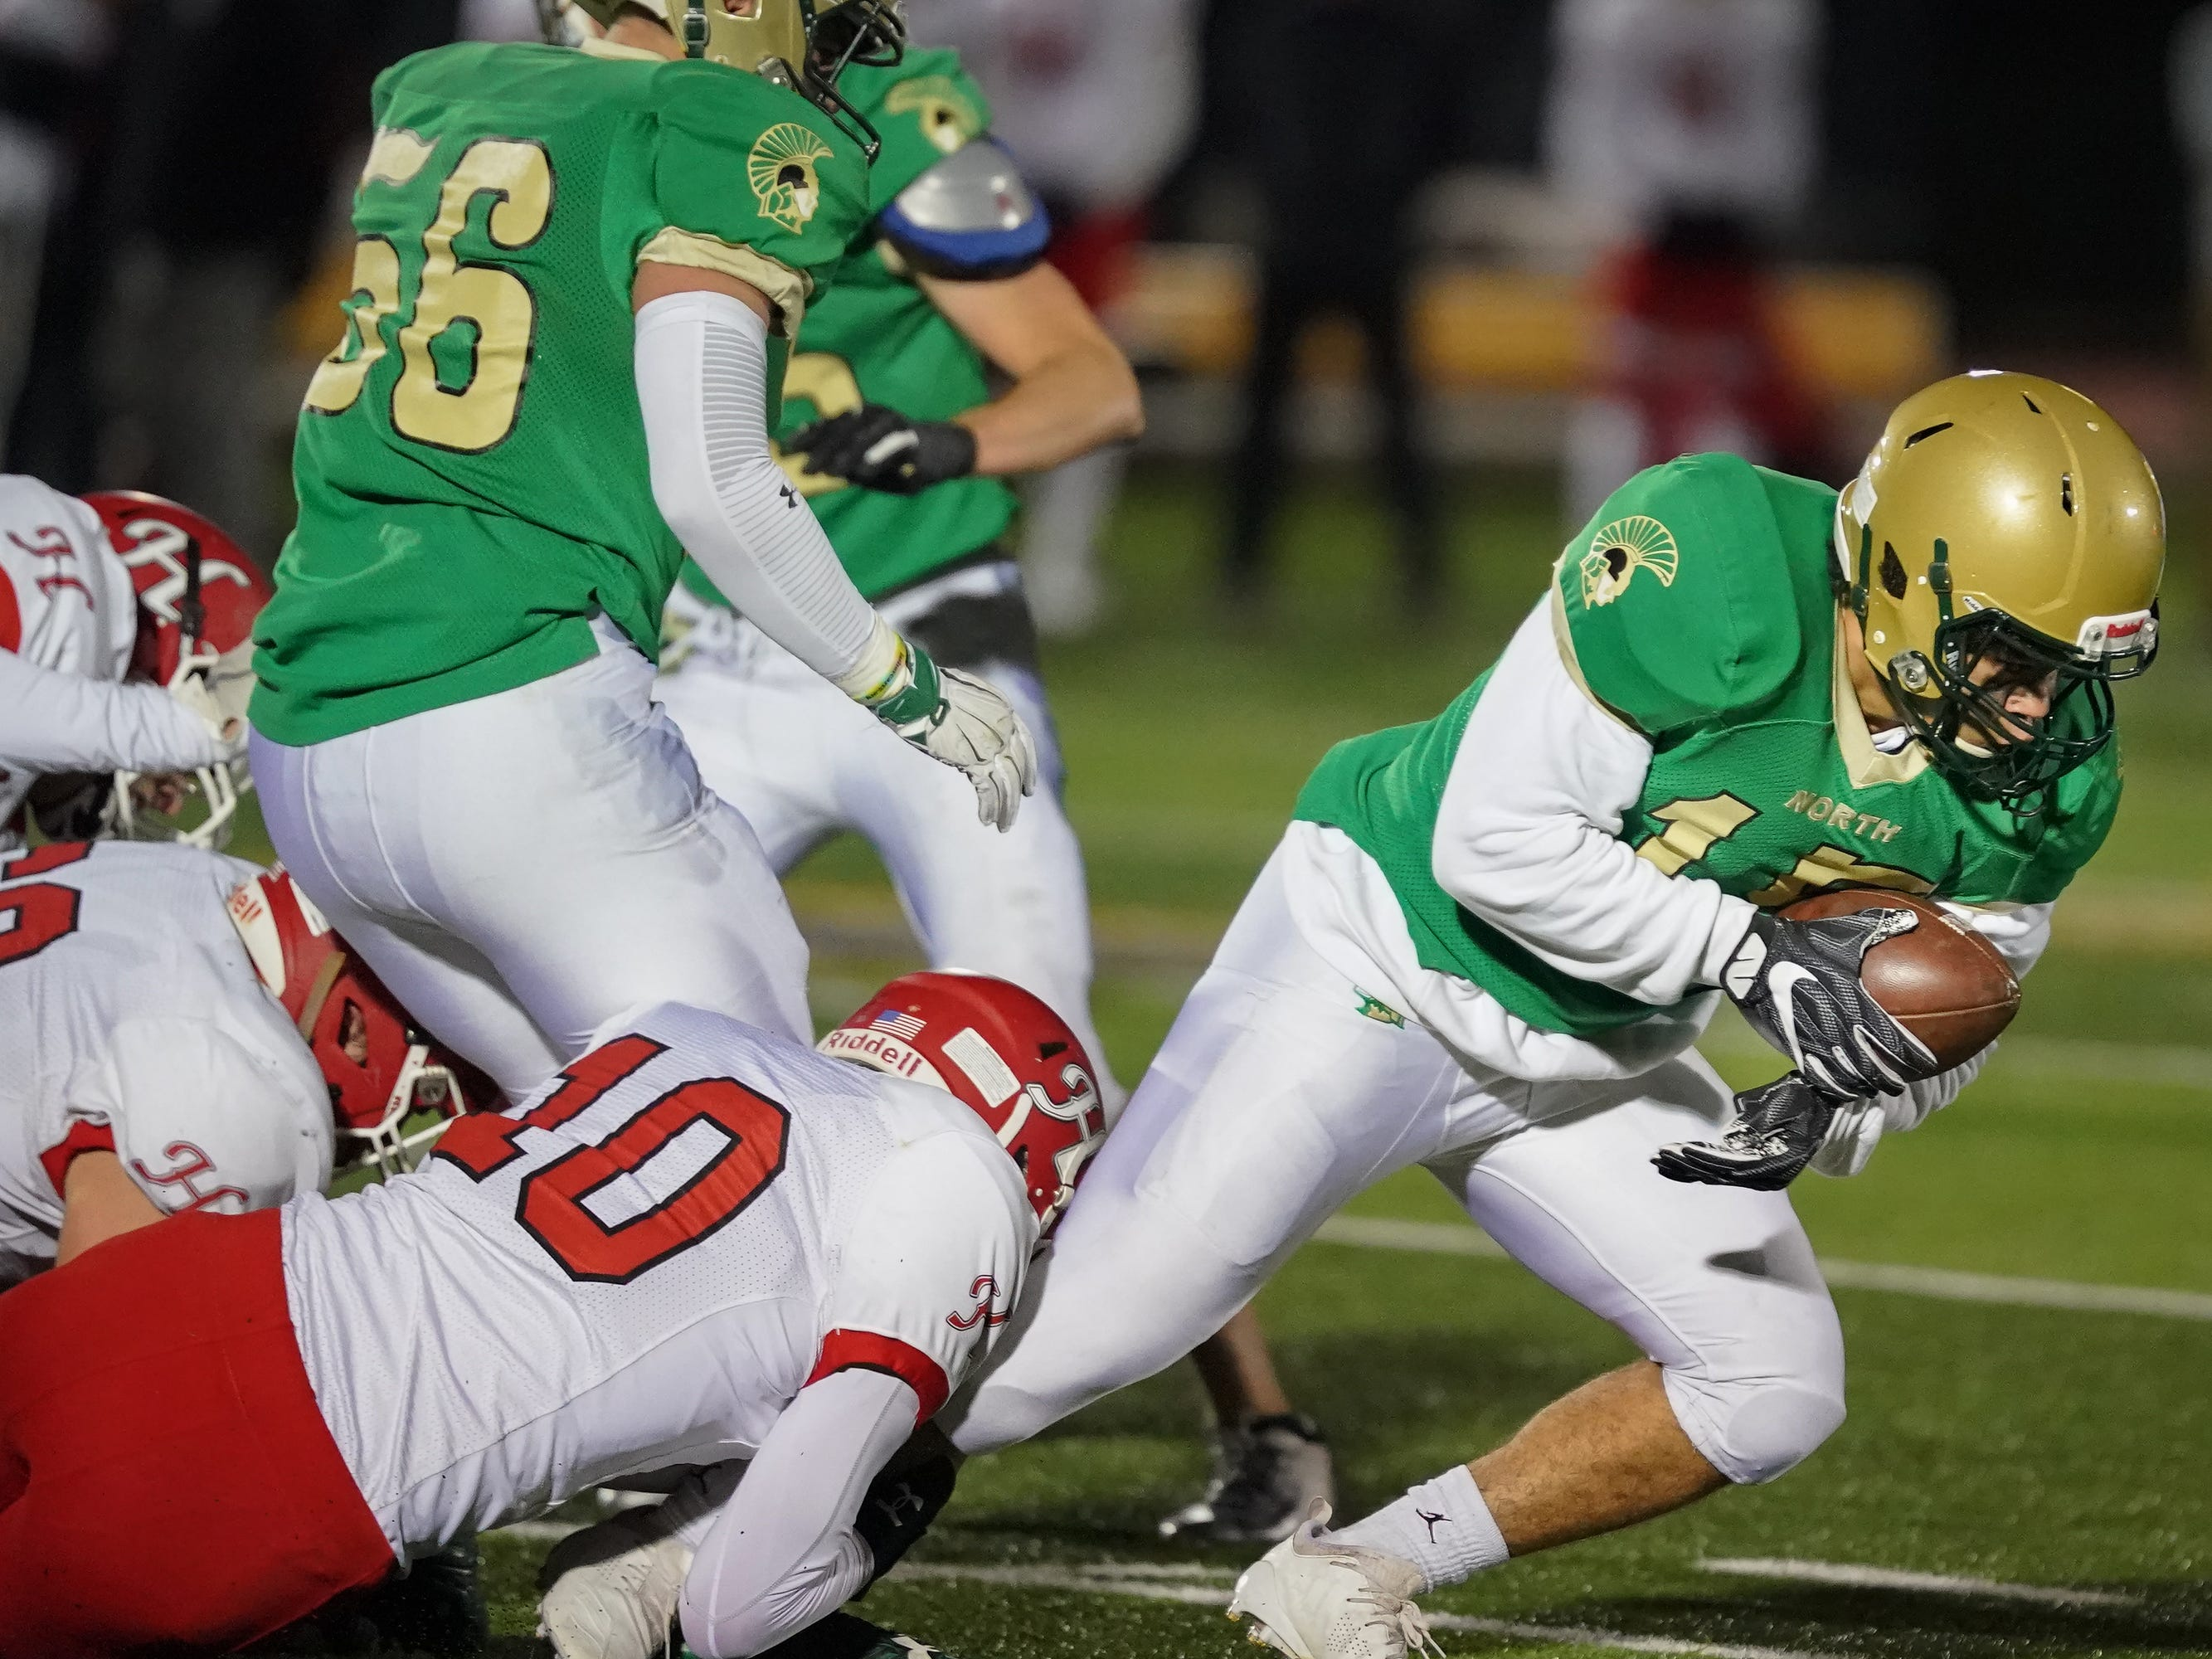 Dion Stulo (15) gets pulled down after a short gain. The Oshkosh North Spartans hosted the Hortonville Polar Bears in an FVA-South conference matchup Friday evening, October 12, 2018 at J. J. Keller Field at Titan Stadium.